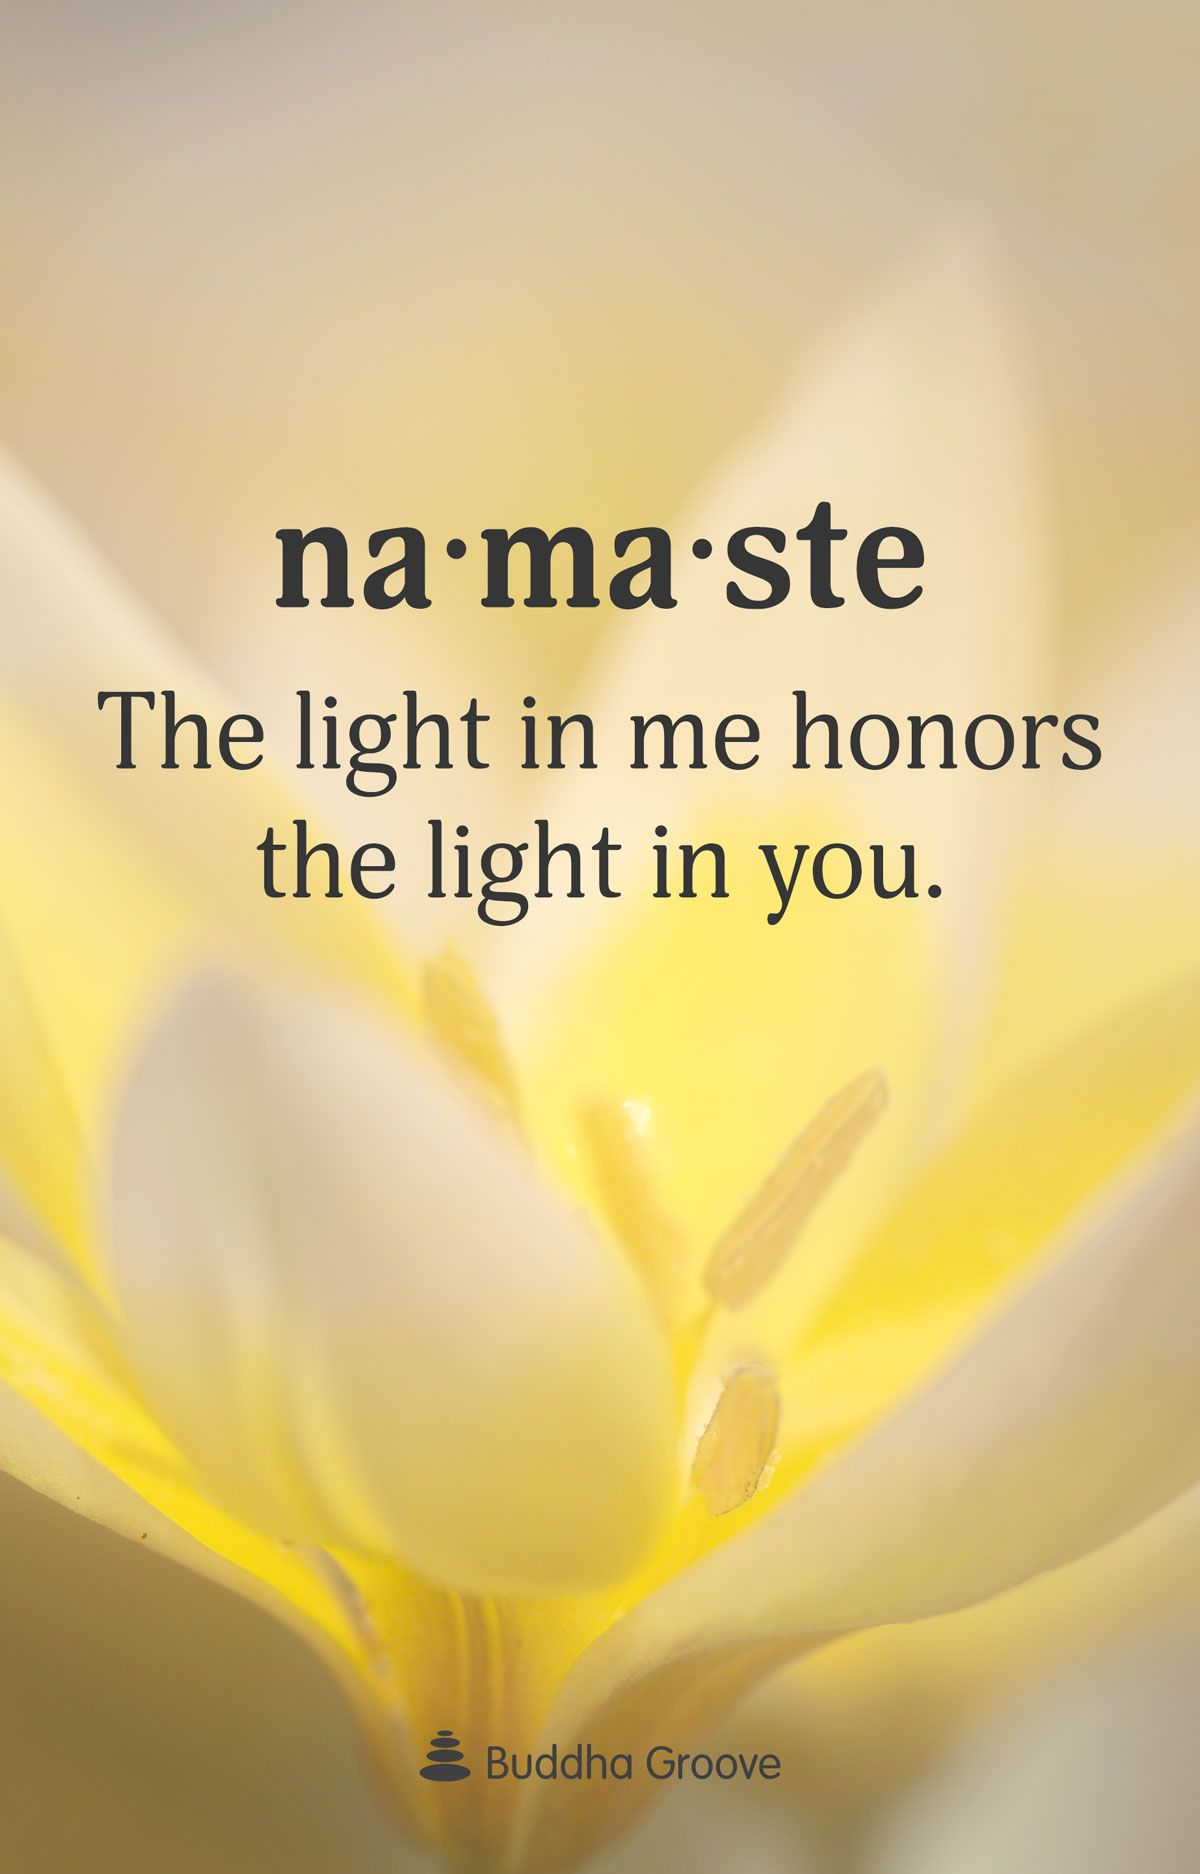 Word of the Day: Namaste